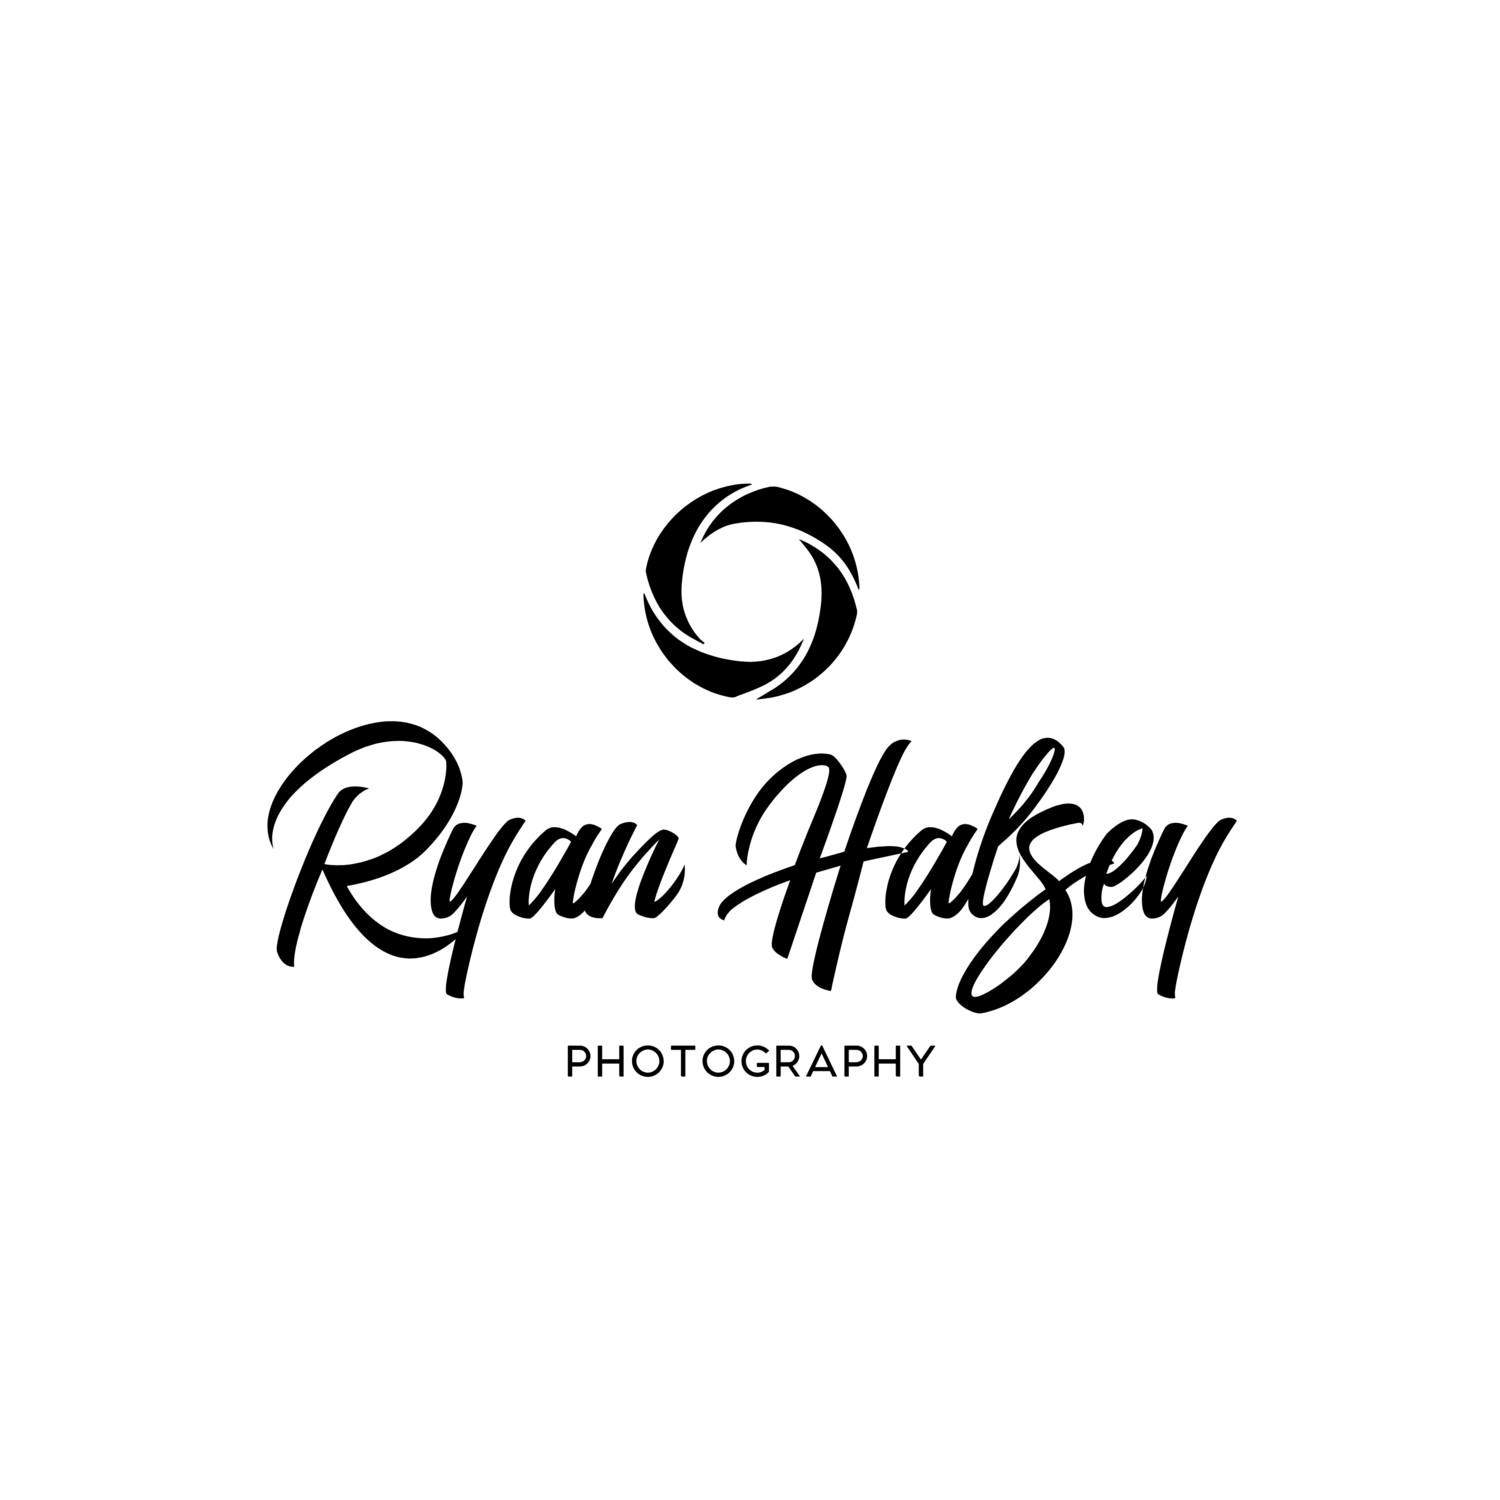 Ryan Halsey Photography